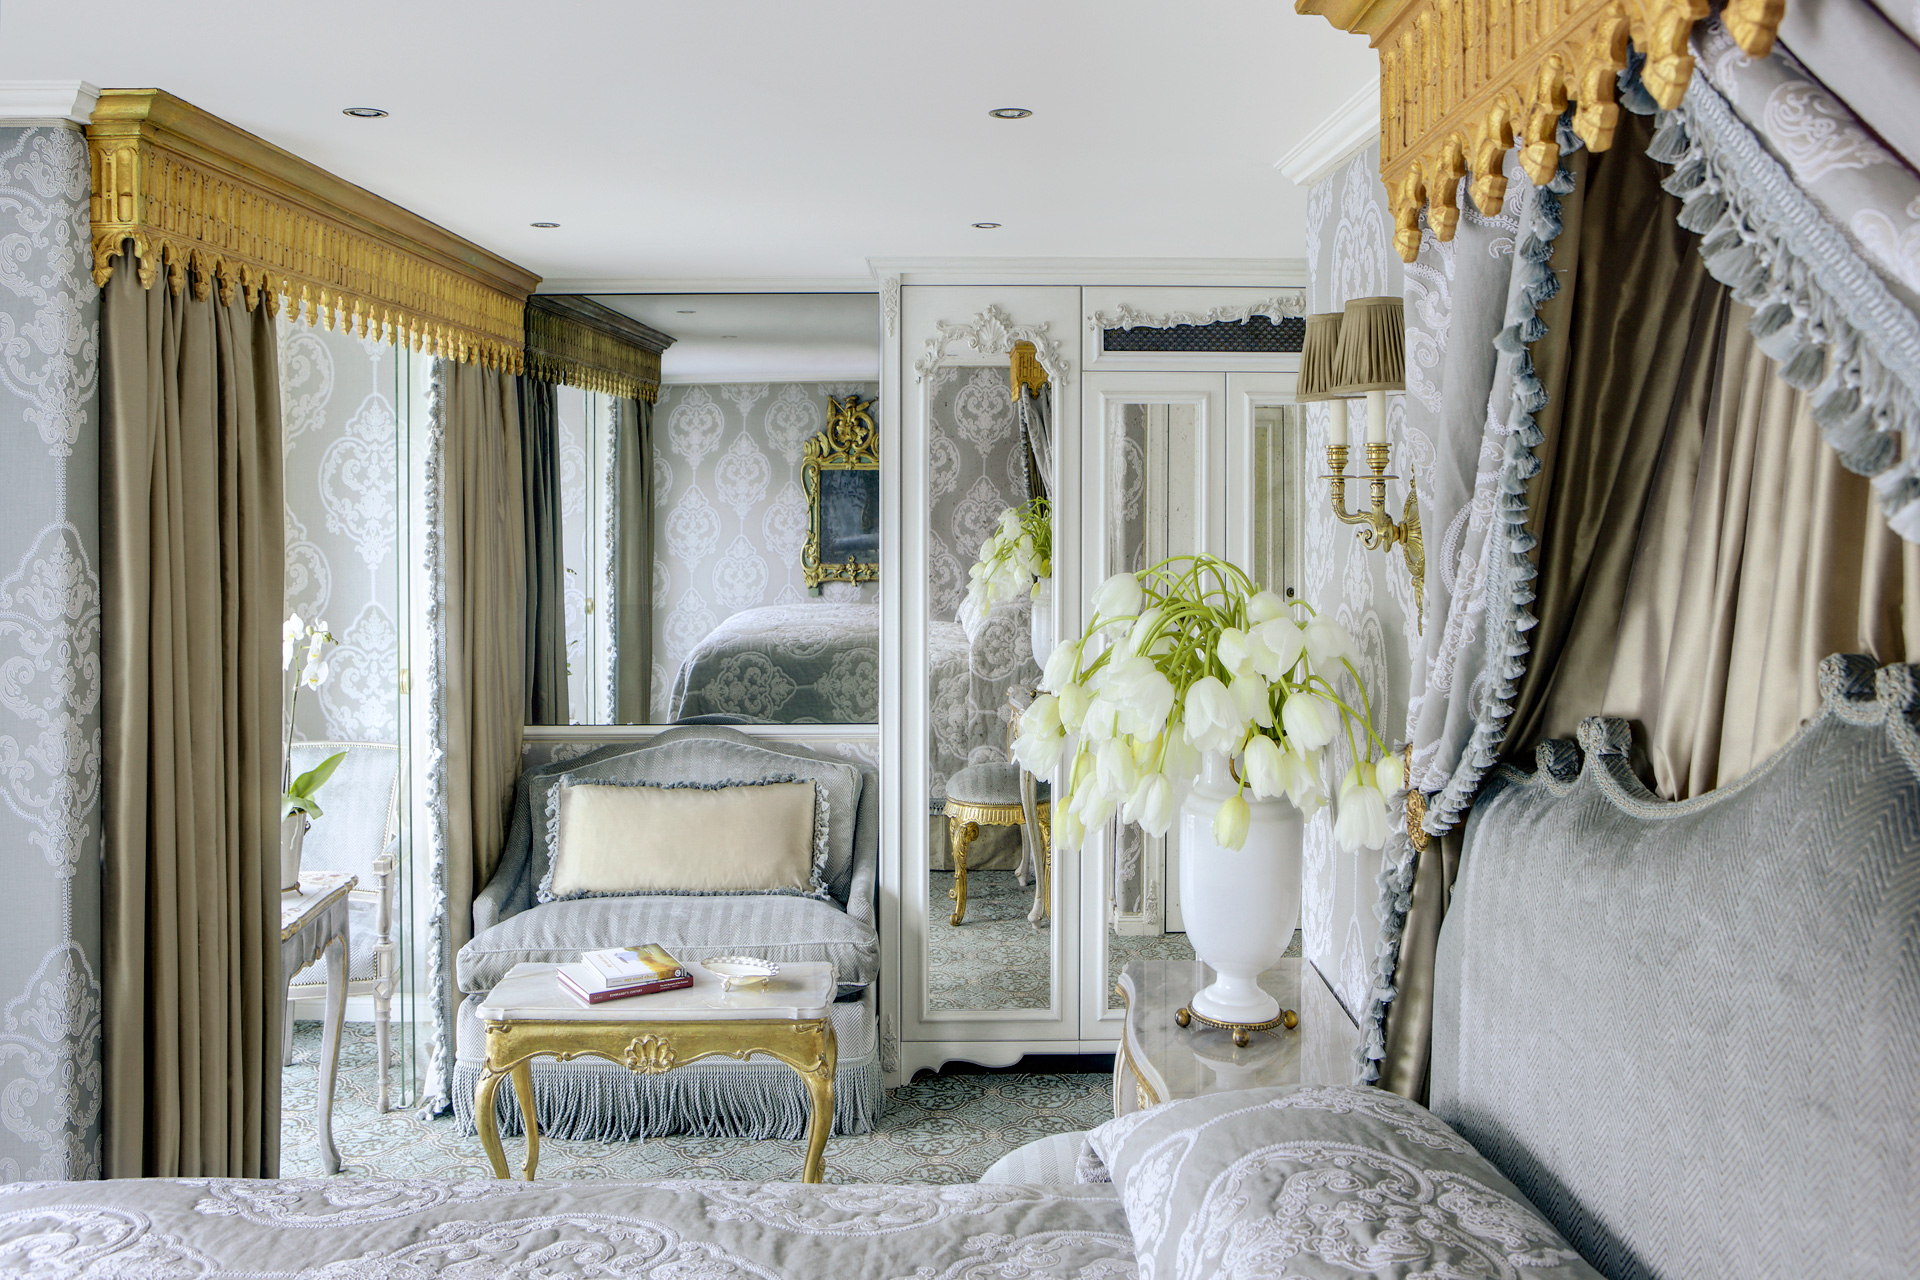 UNIWORLD Boutique River Cruises SS Maria Theresa Accommodation Suite 403 1.jpg